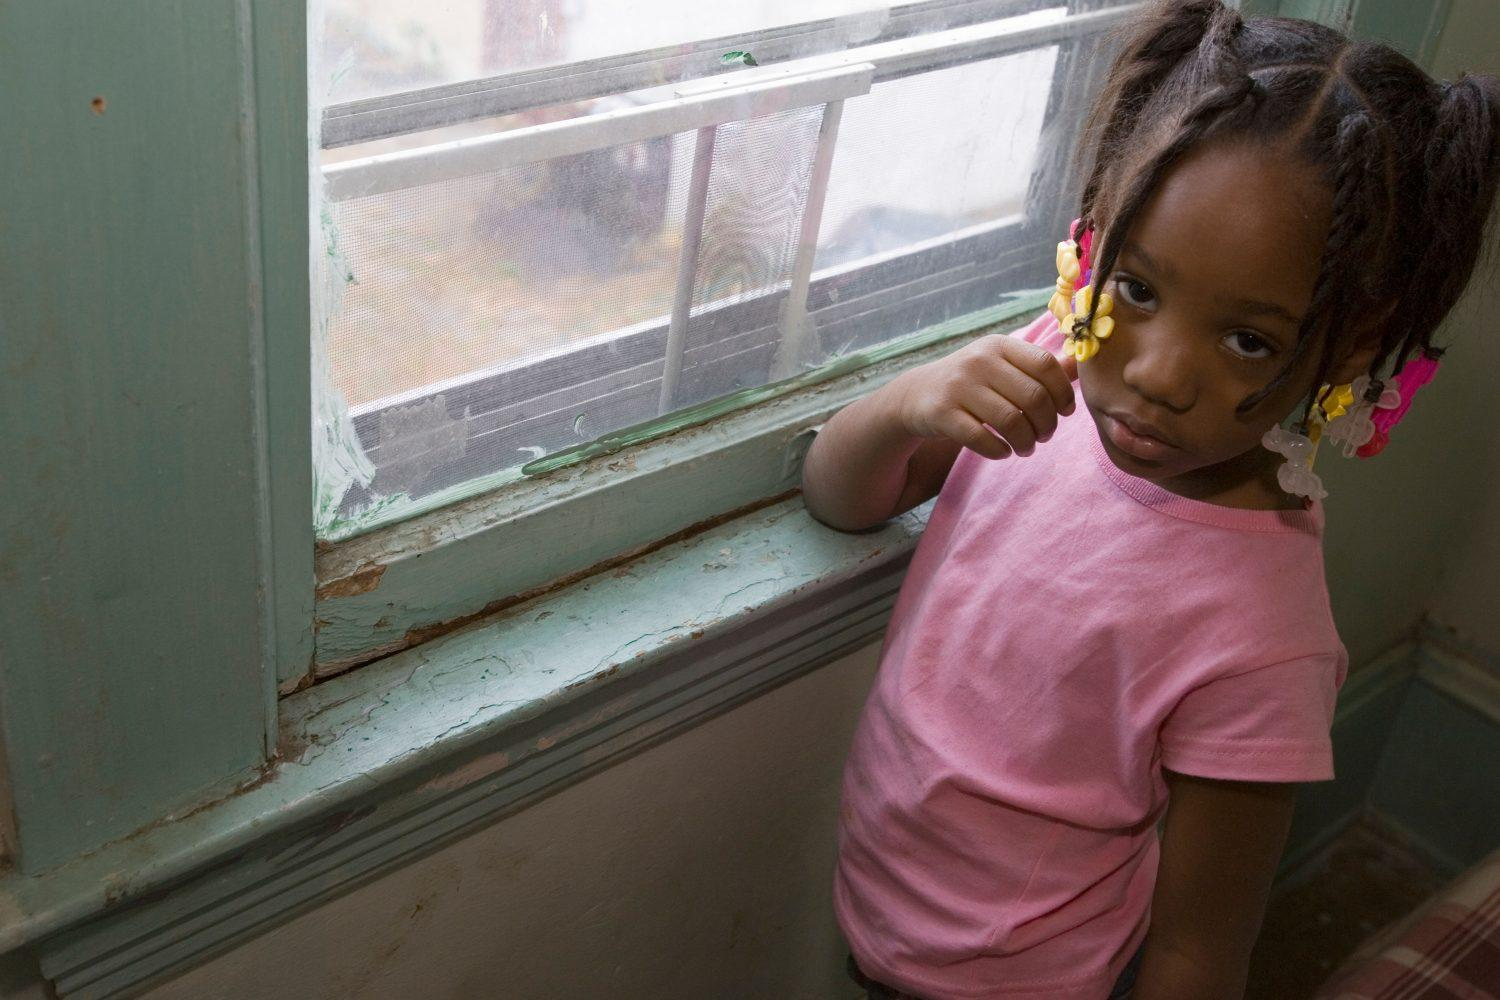 Four-year-old Taharah Abdulhaqq stands by a window in her home, where lead-based paint chips from the wood.